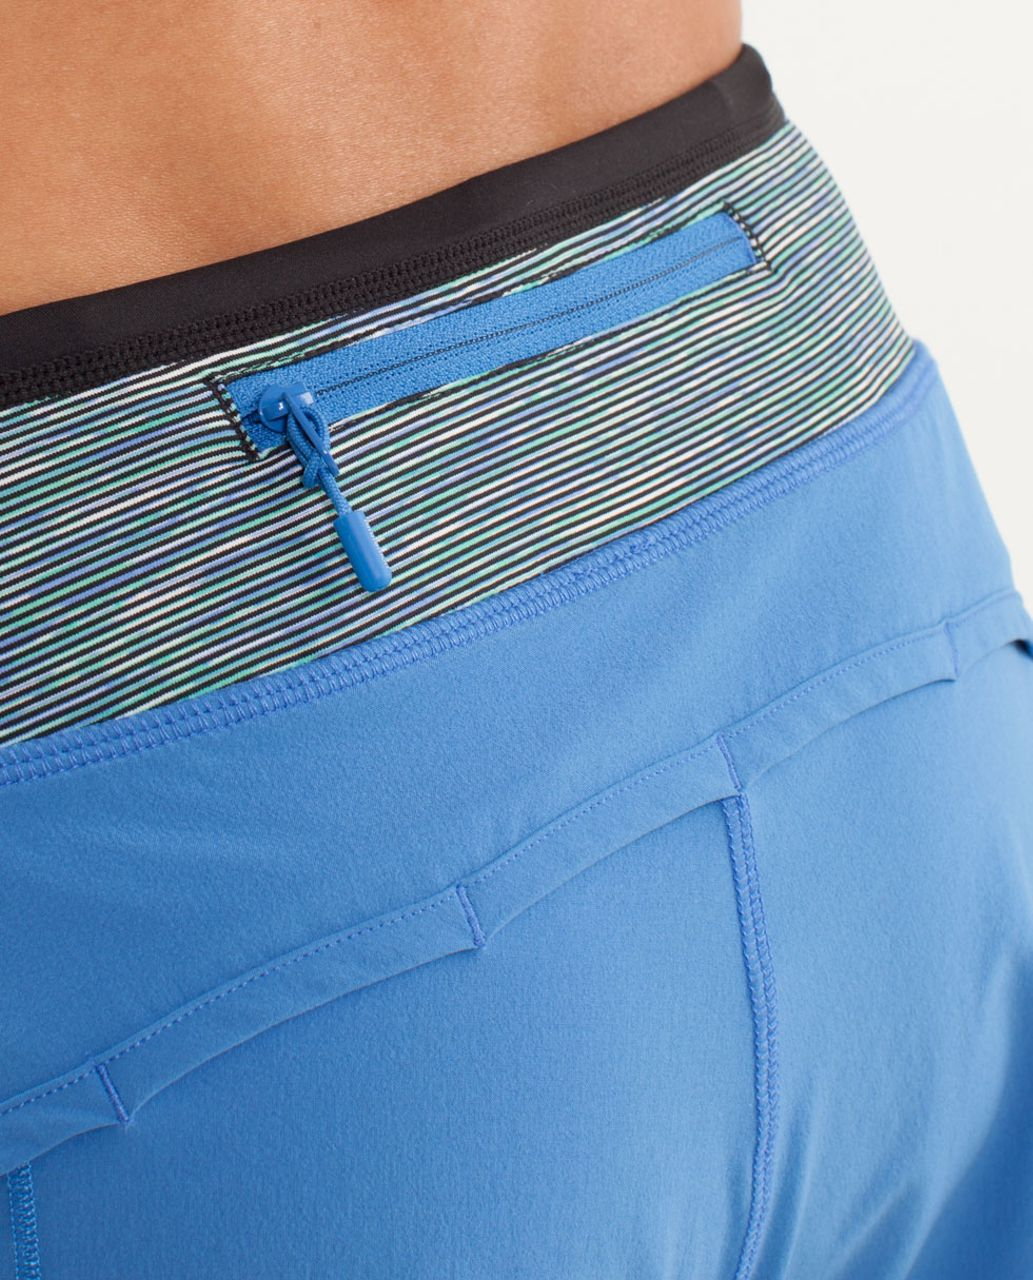 Lululemon Turbo Run Short - Porcelaine / Wee Are From Space Deep Coal May Multi